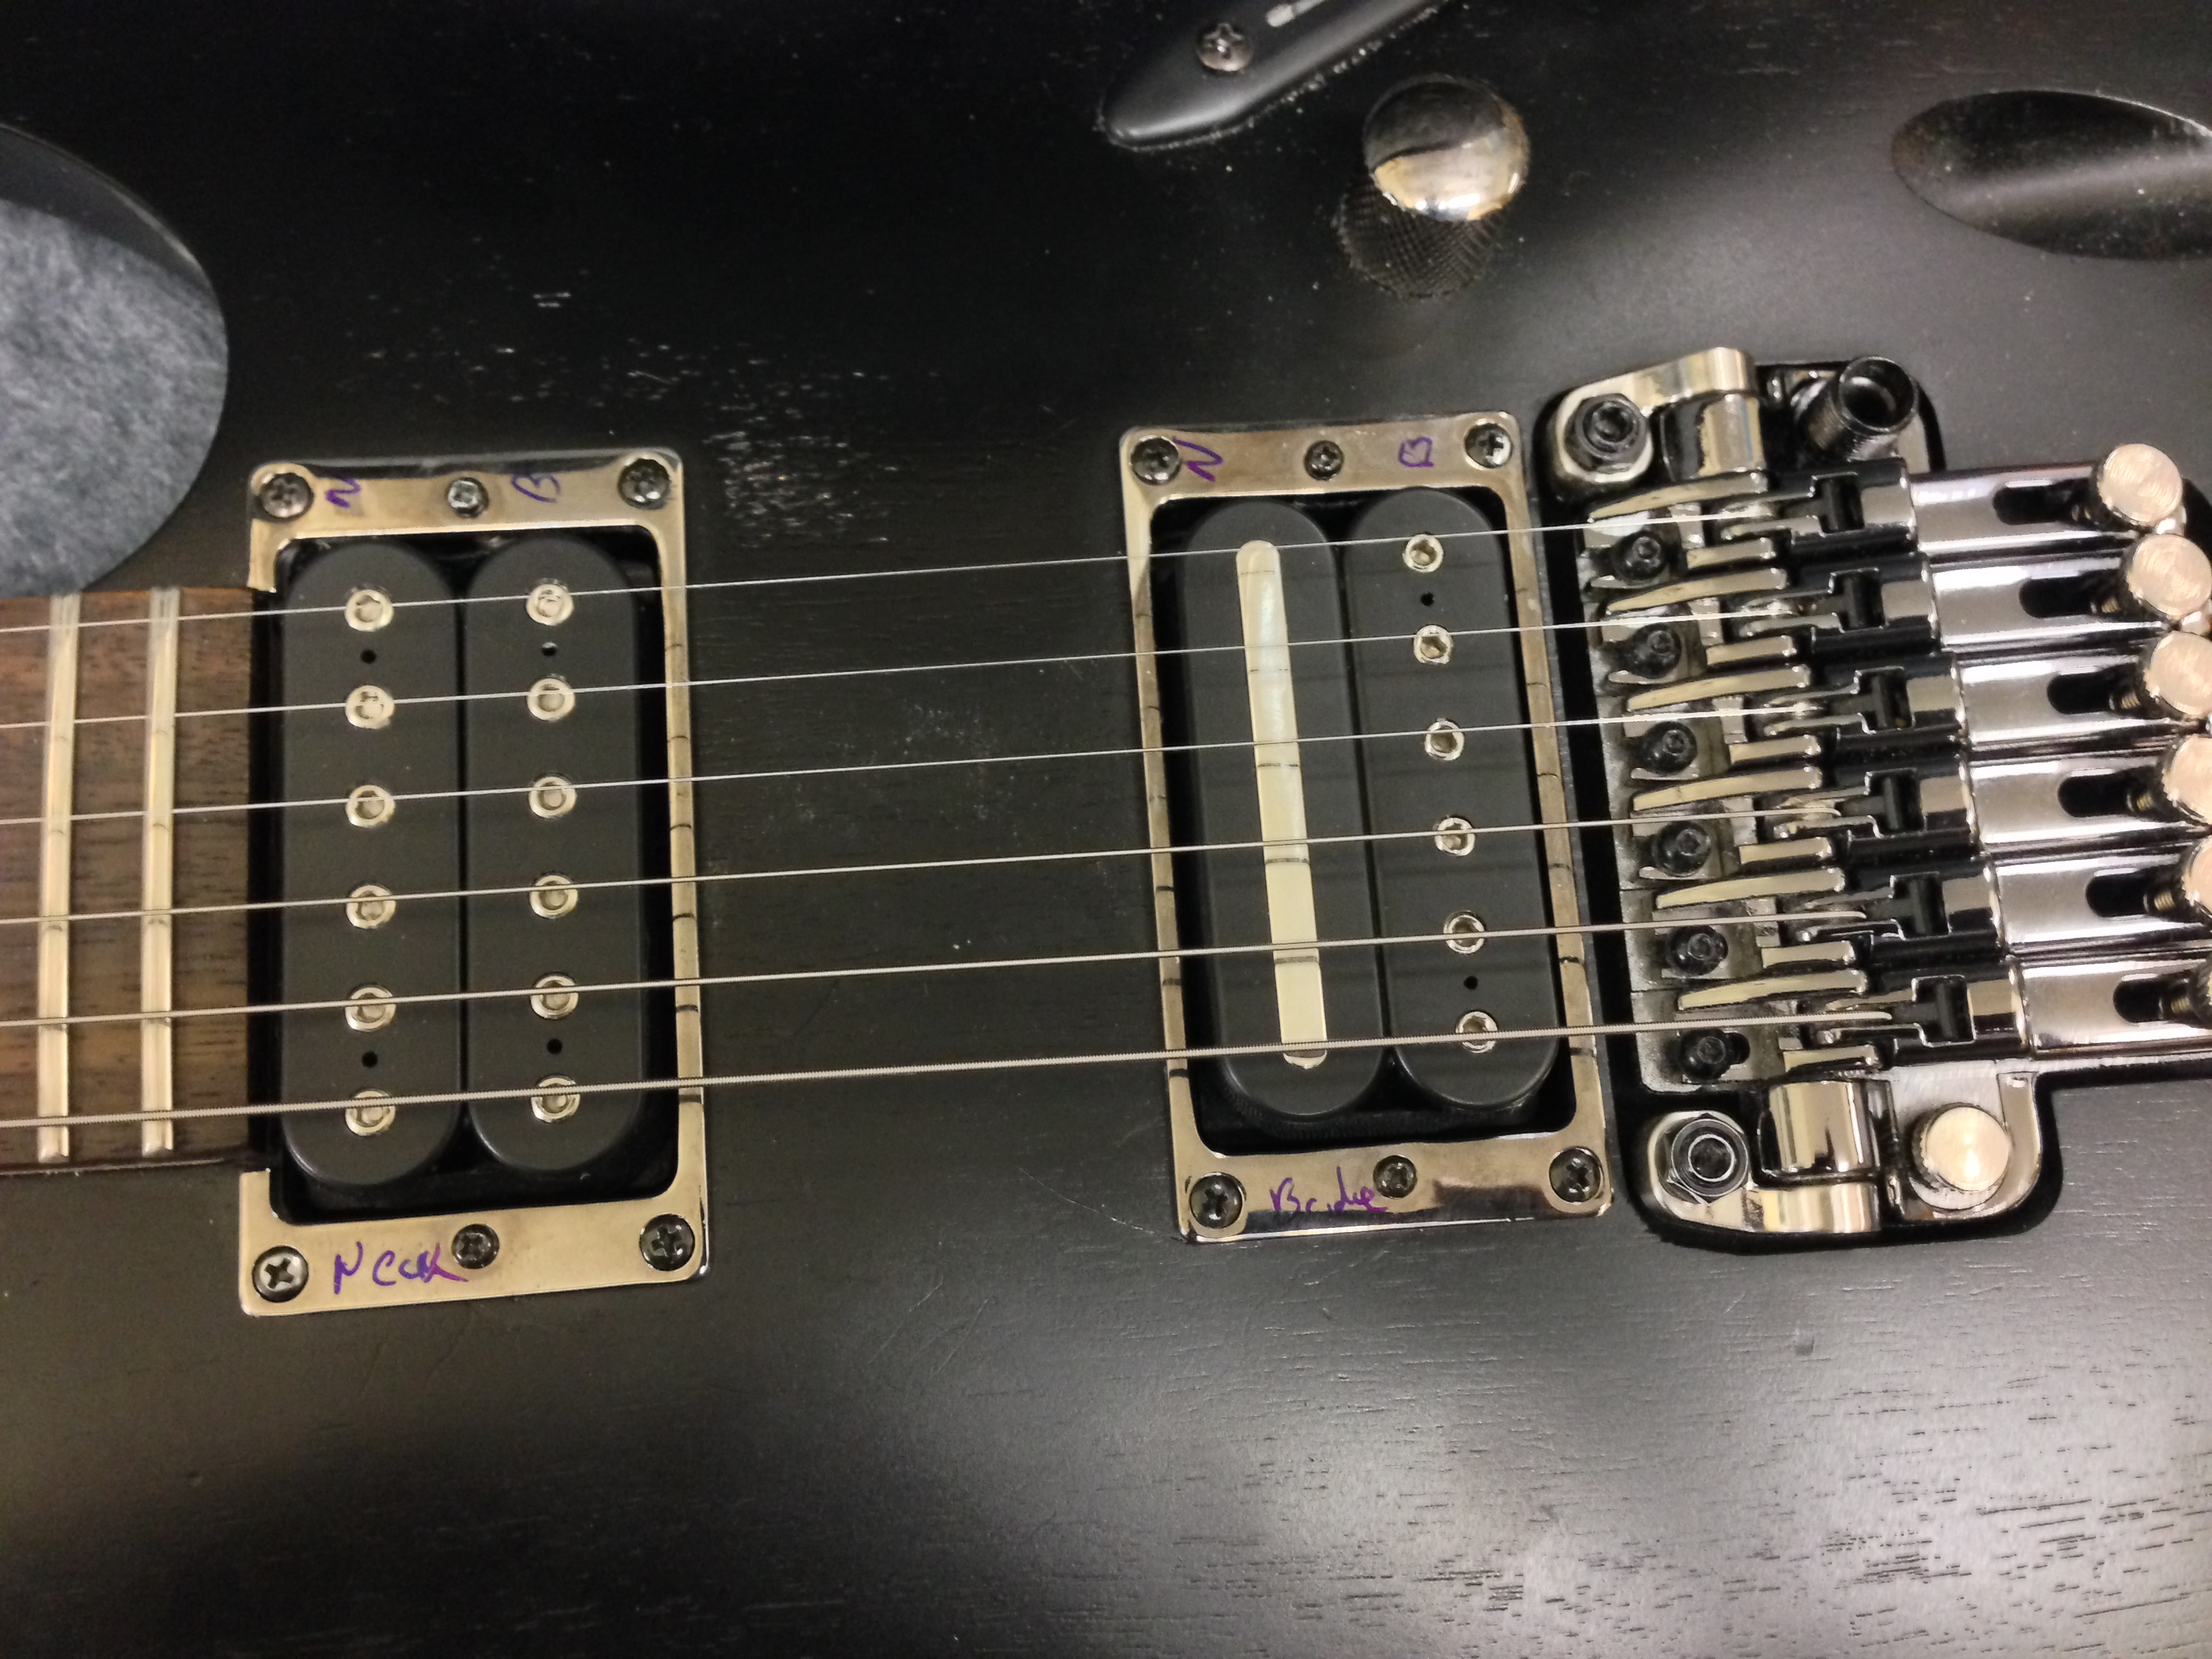 dimarzio pickups in guitar changing the pickups in an ibanez s420 guitar the inability to DiMarzio HSH Wiring-Diagram at nearapp.co